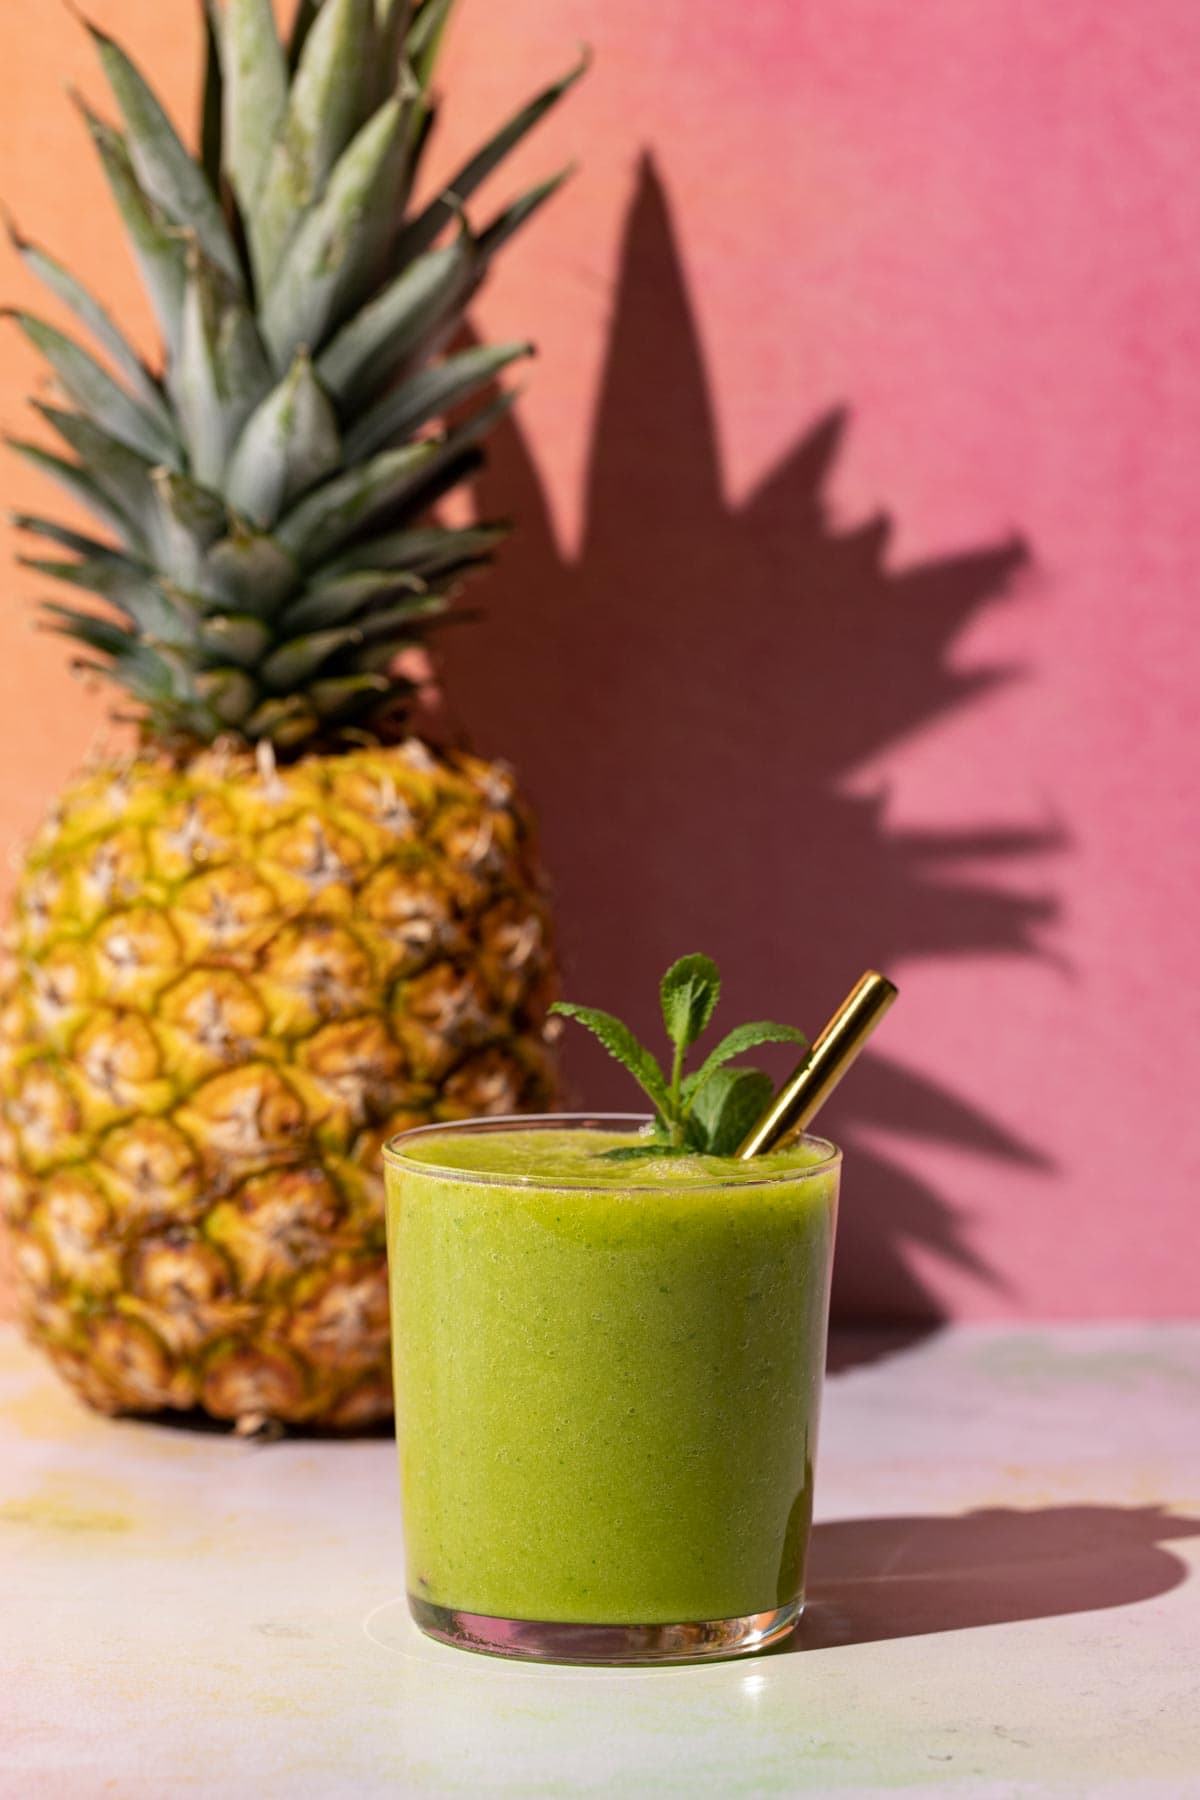 Mango Pineapple Kale smoothie on a colorful background with a pineapple